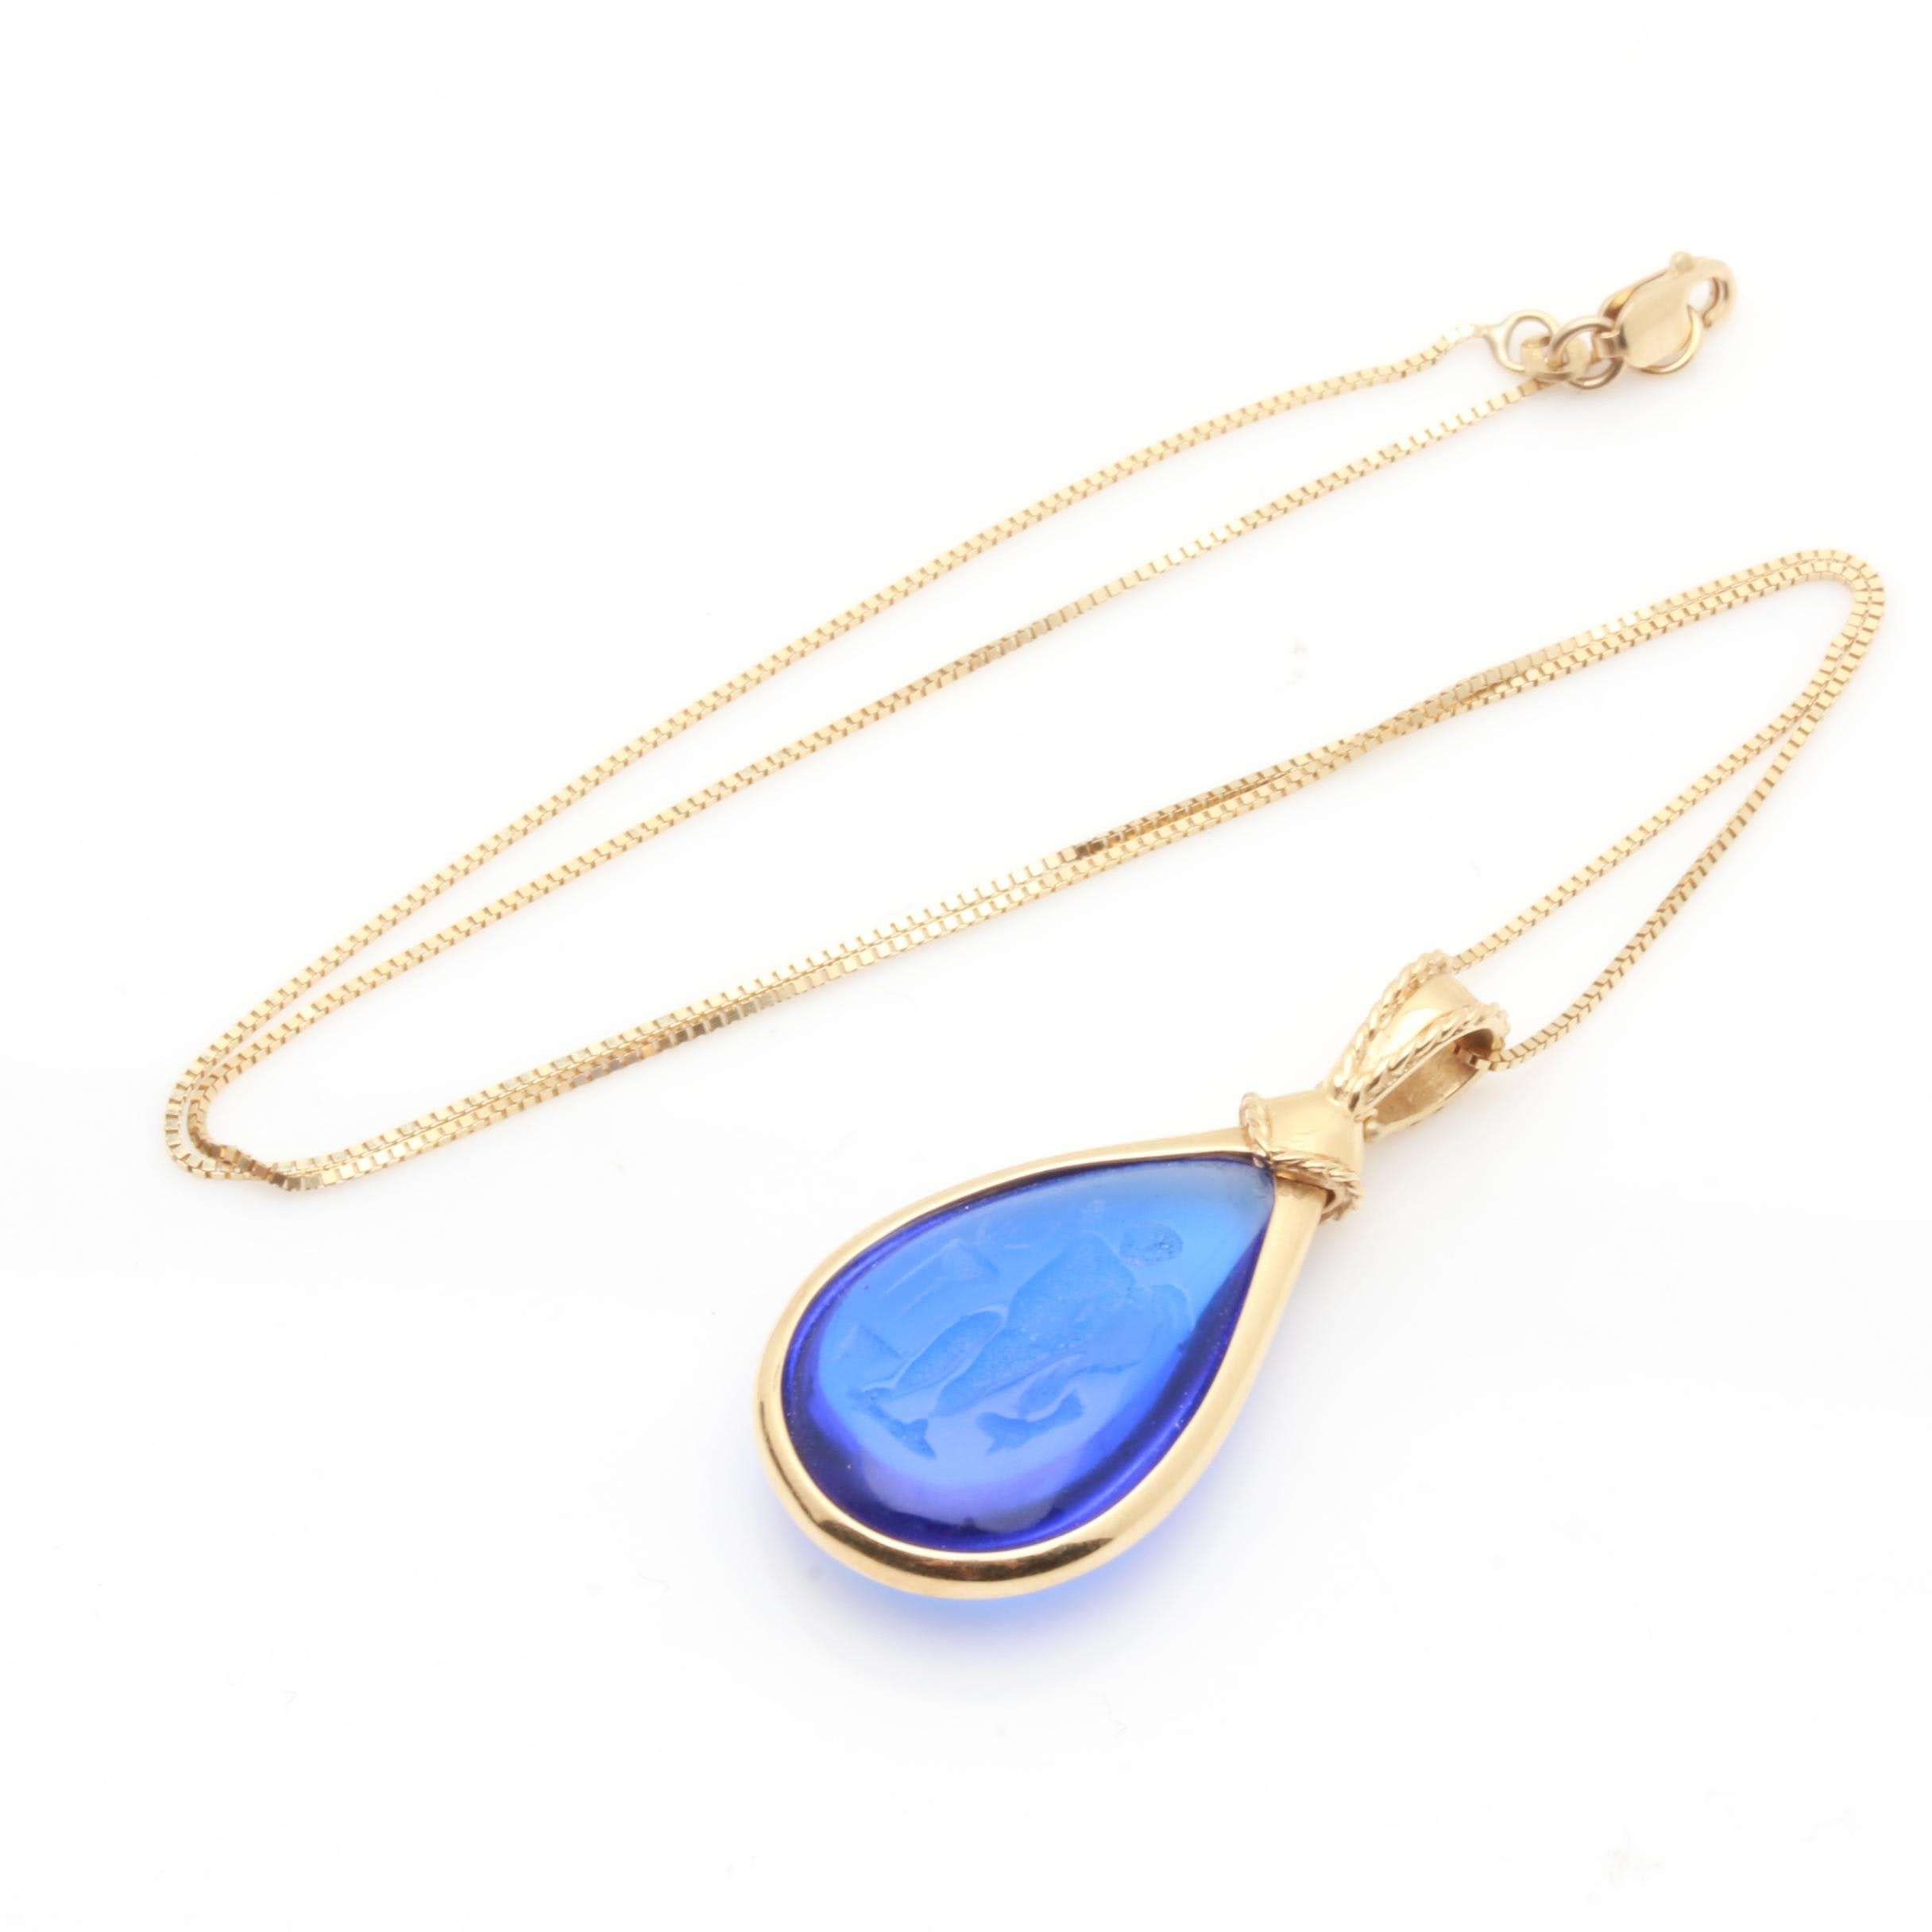 14K Yellow Gold Blue Glass Intaglio Pendant Necklace